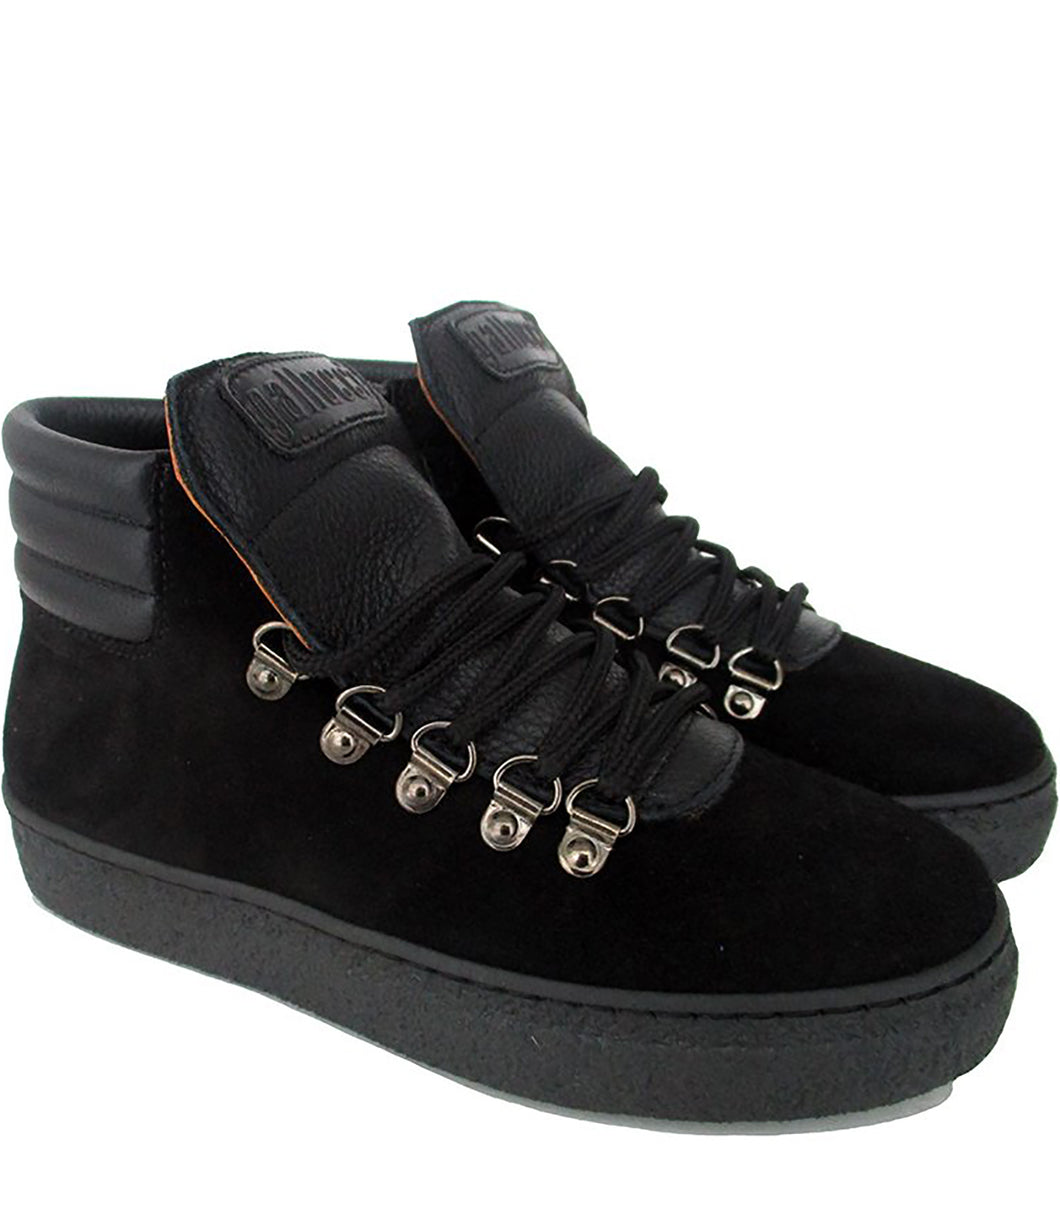 High-Top Sneakers in Black Velour and Black Elk Leather